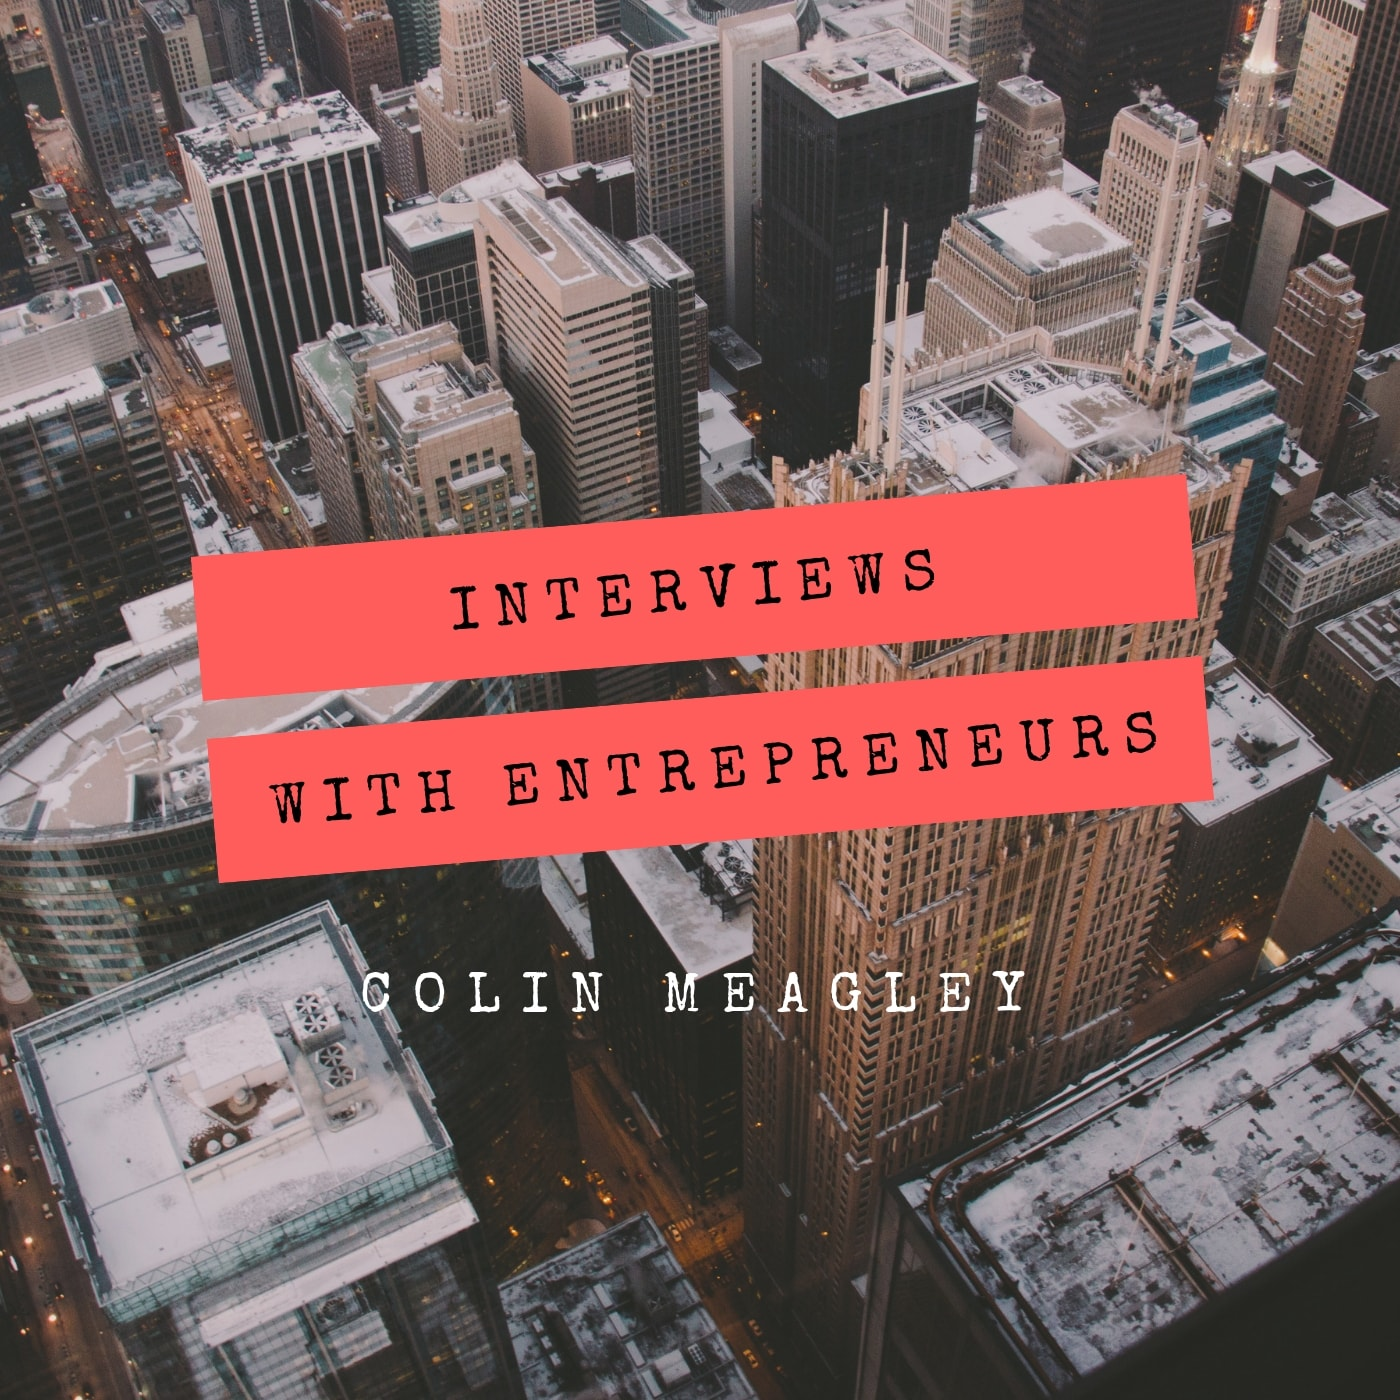 Colin Meagley: Interviews with Entrepreneurs